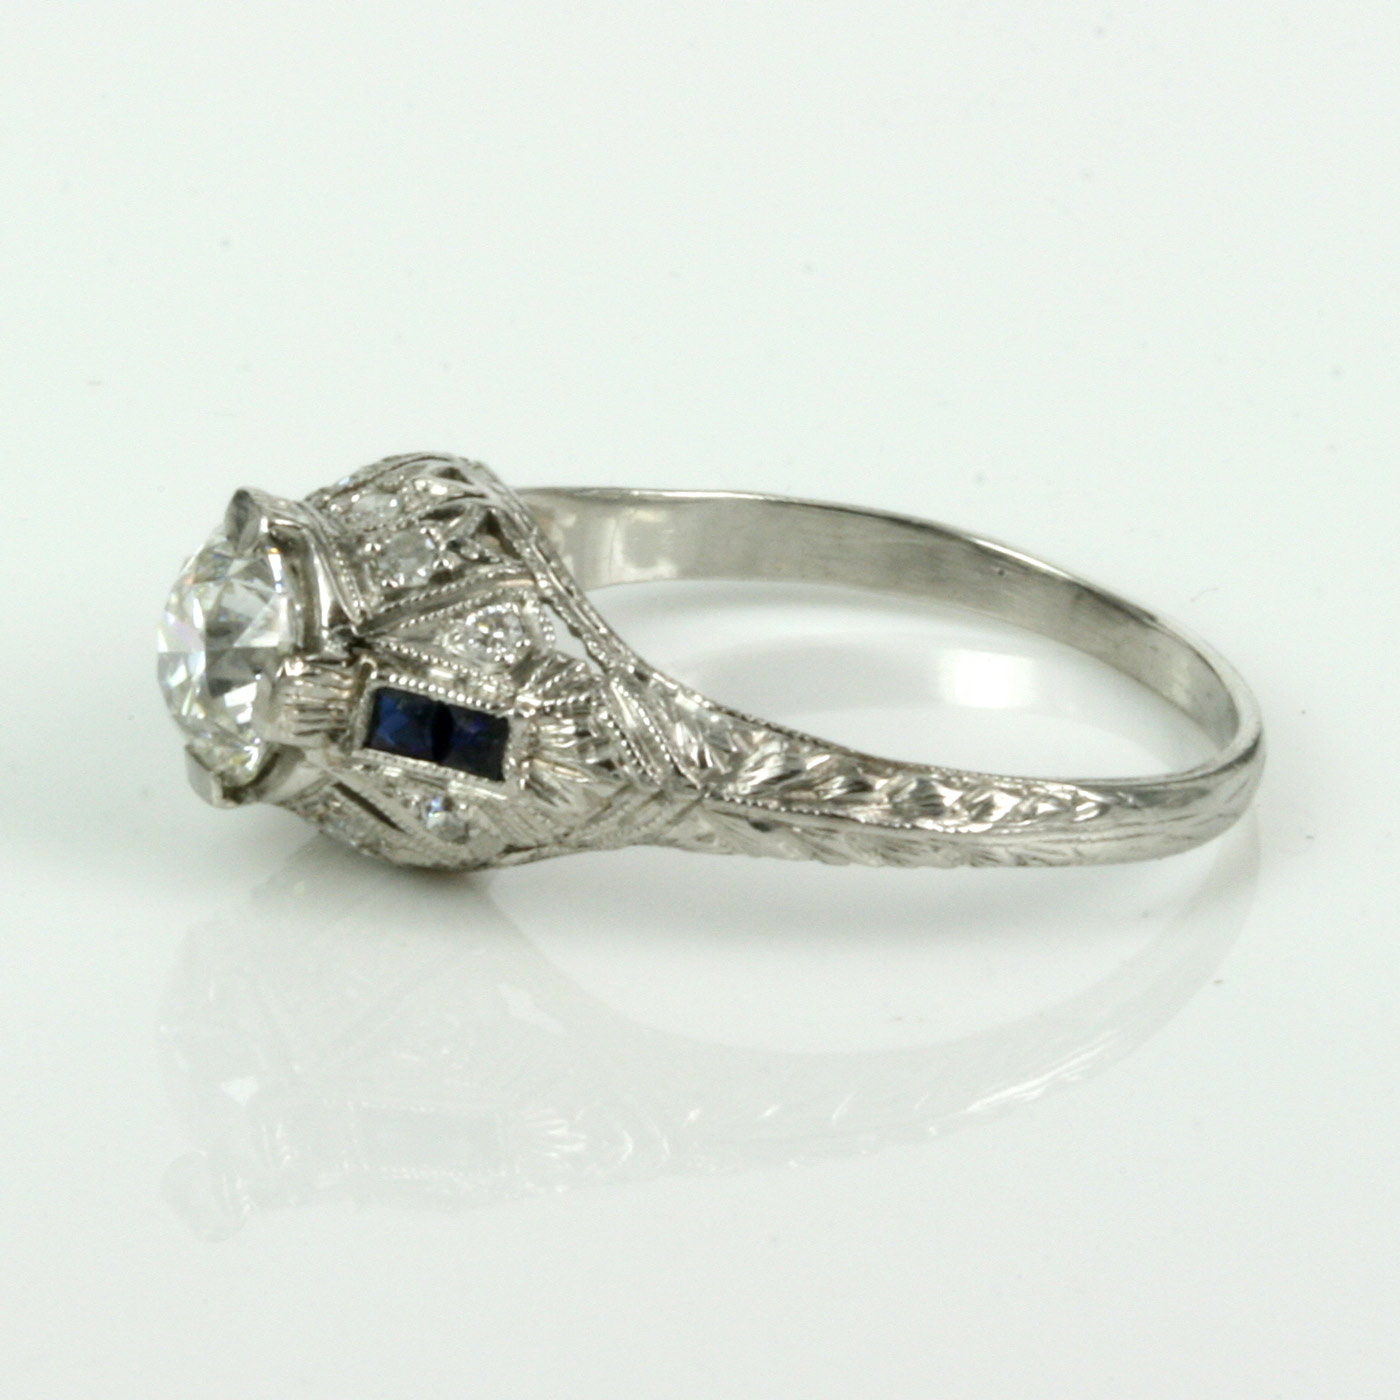 buy deco engagement ring with side sapphires sold rings sydney kalmarantiques